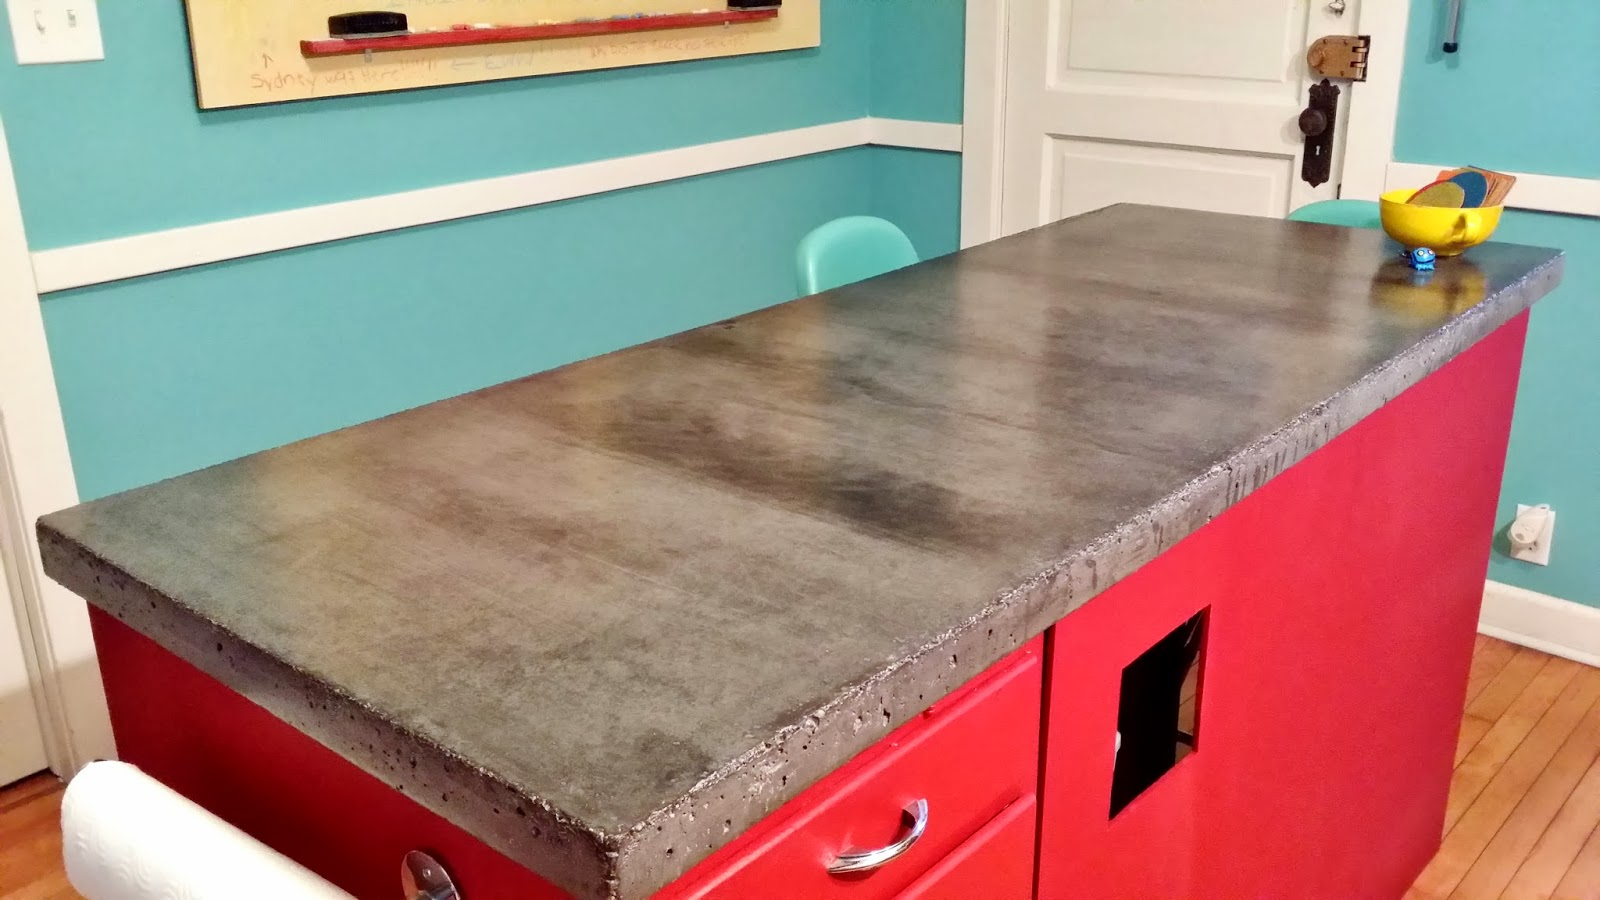 diy cement countertops apartment 528 the weekender diy concrete countertops 957